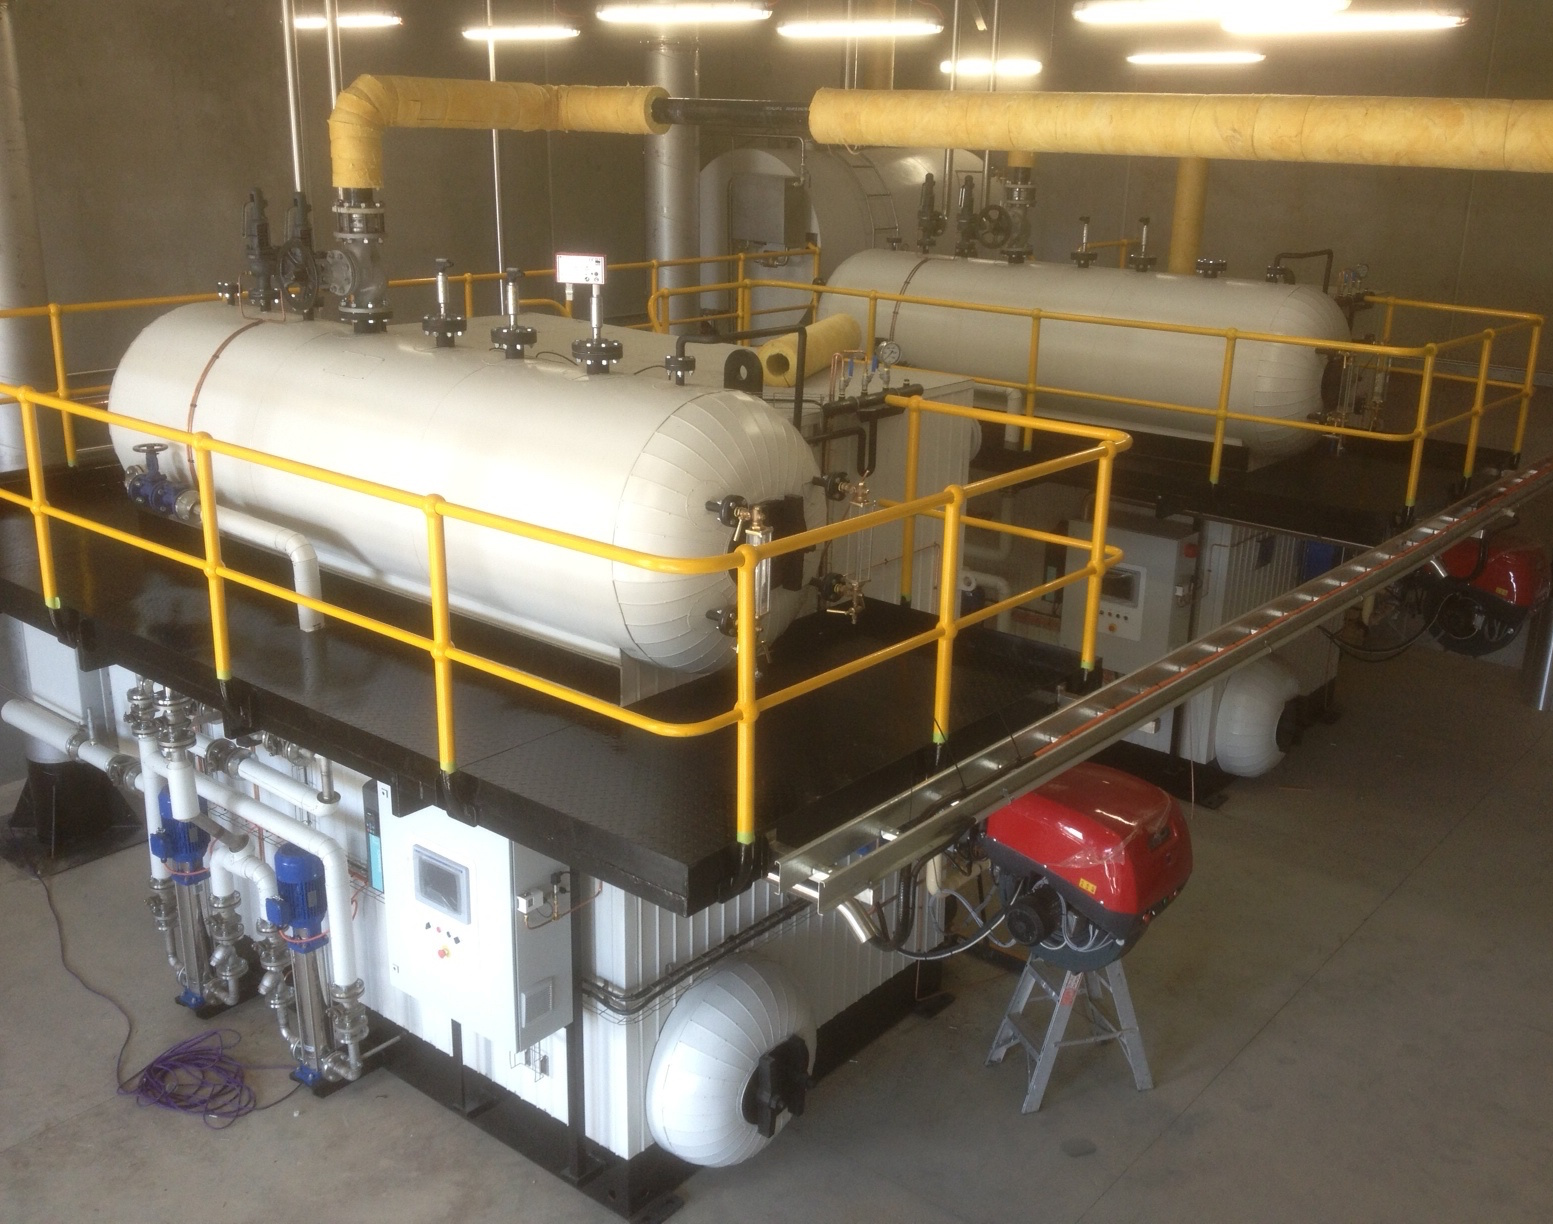 vertical watertube steam boilers